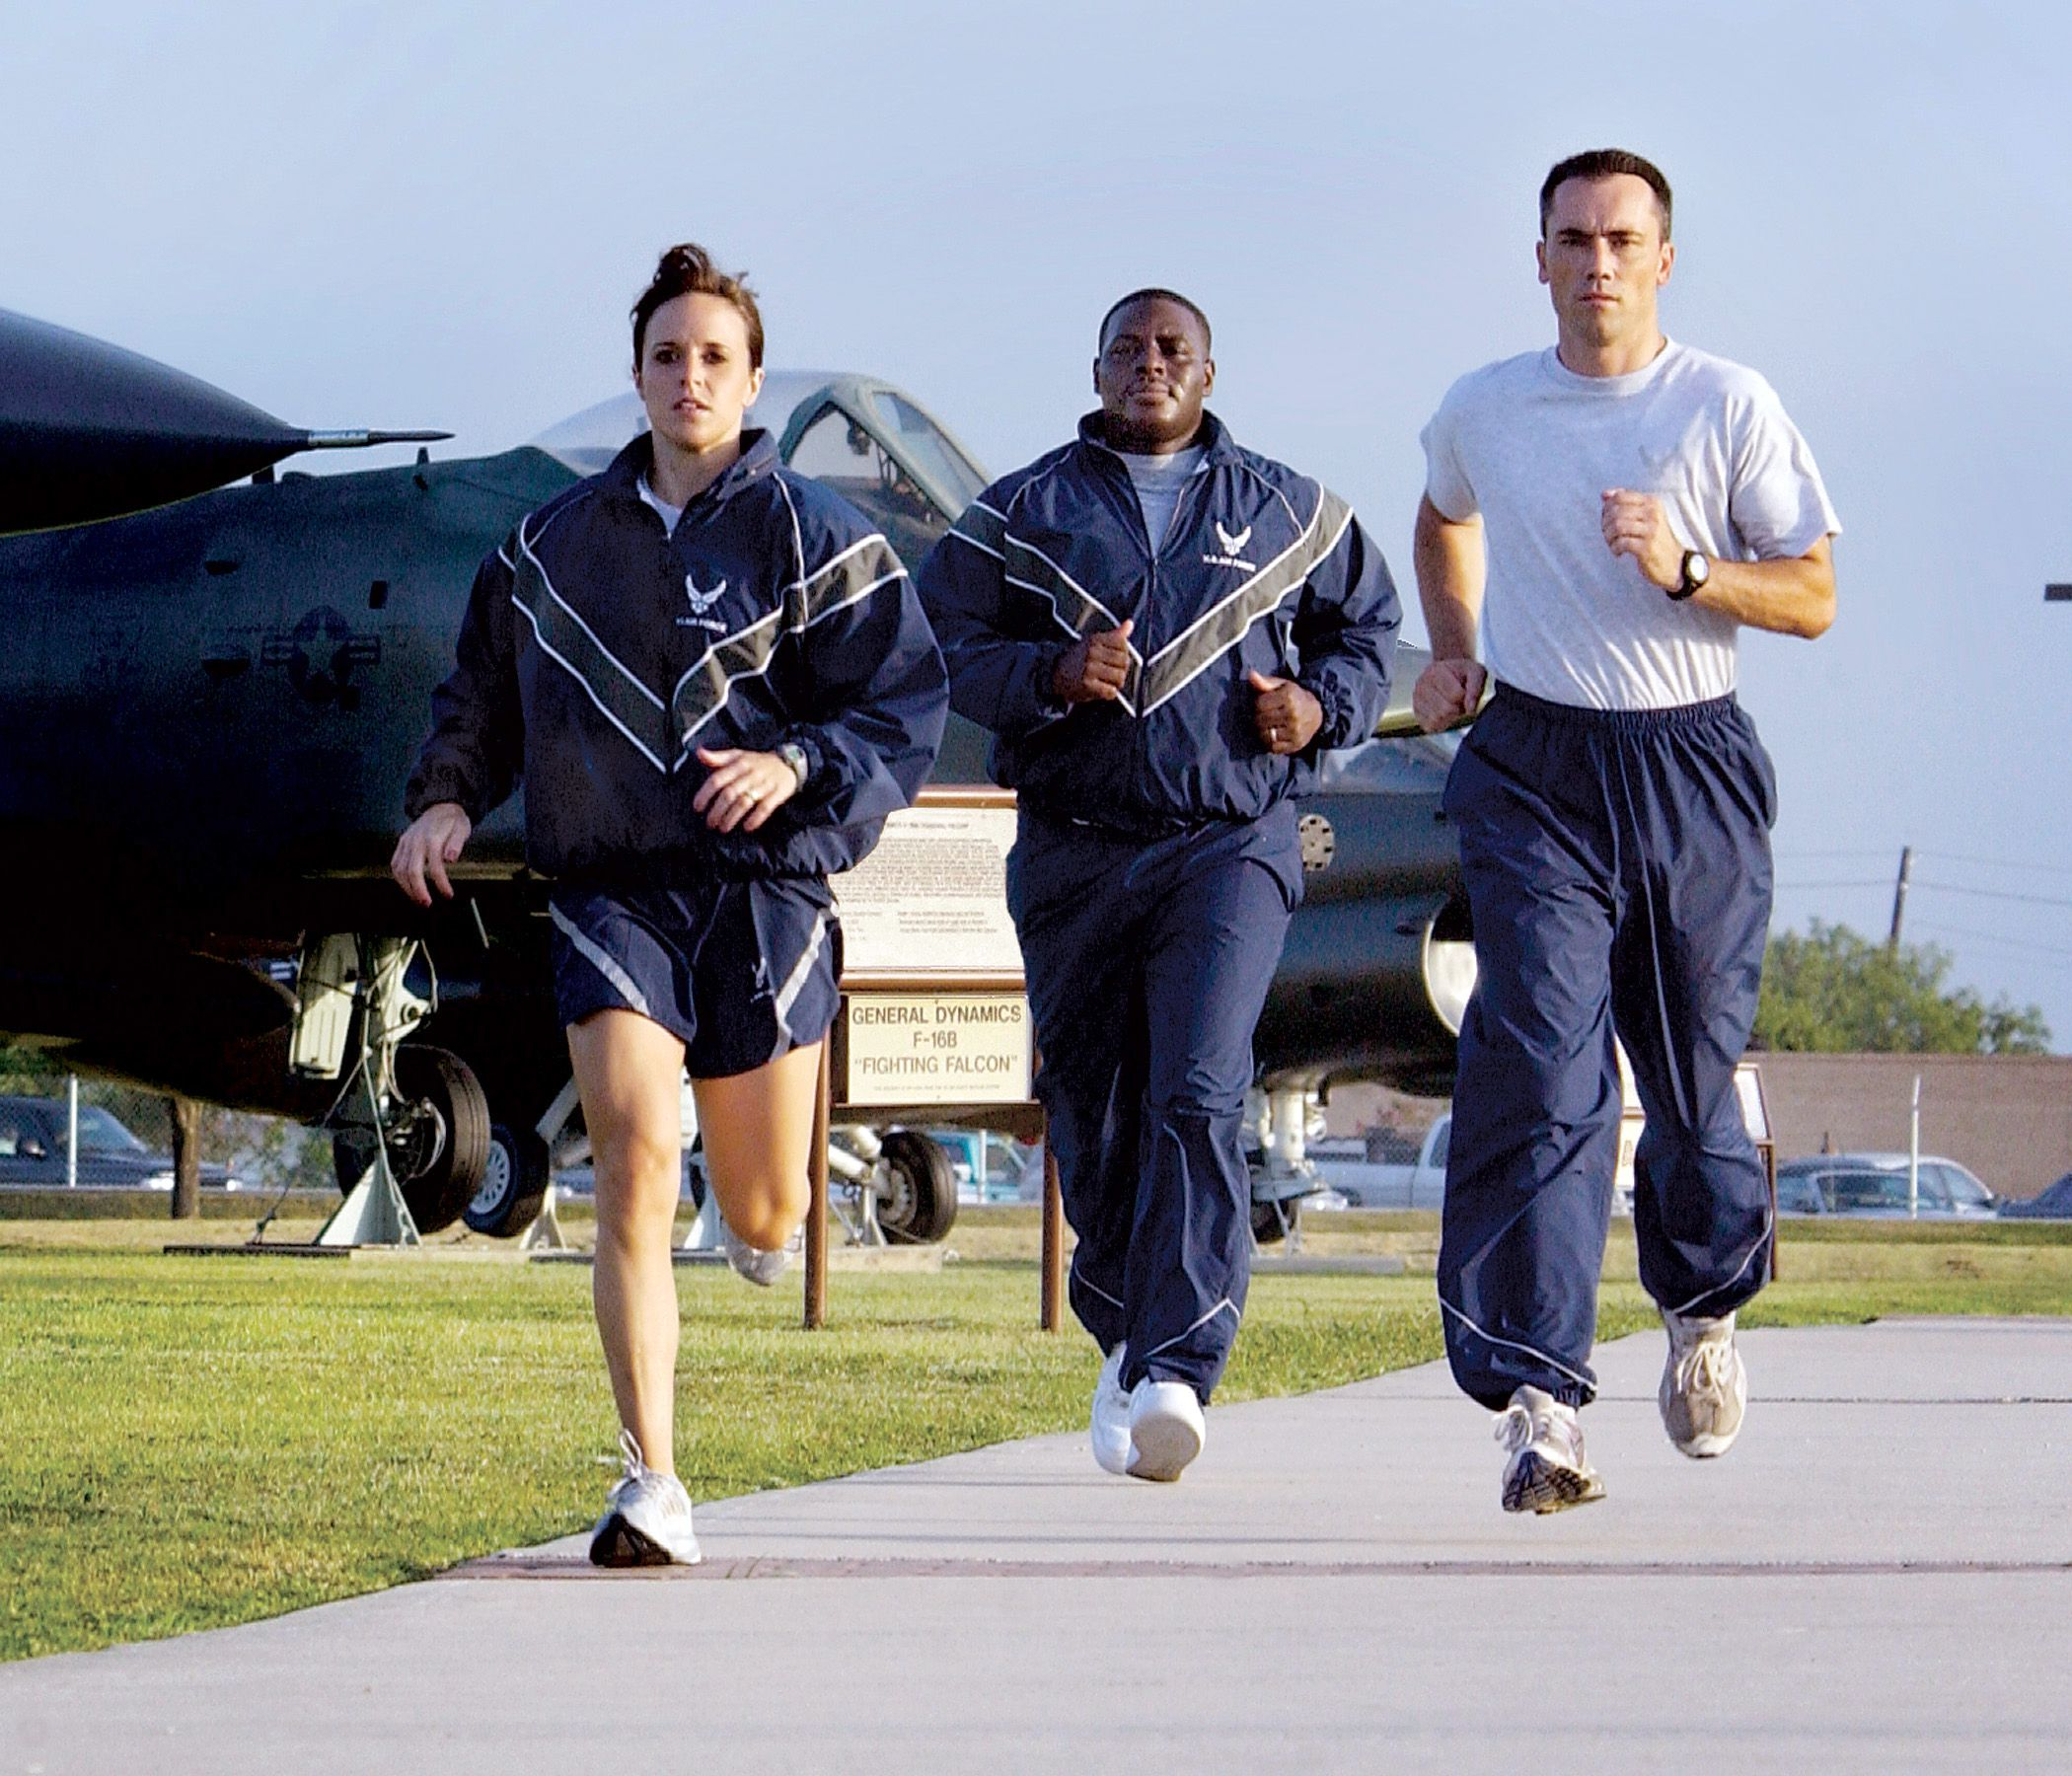 Air Force postpones physical fitness tests to July